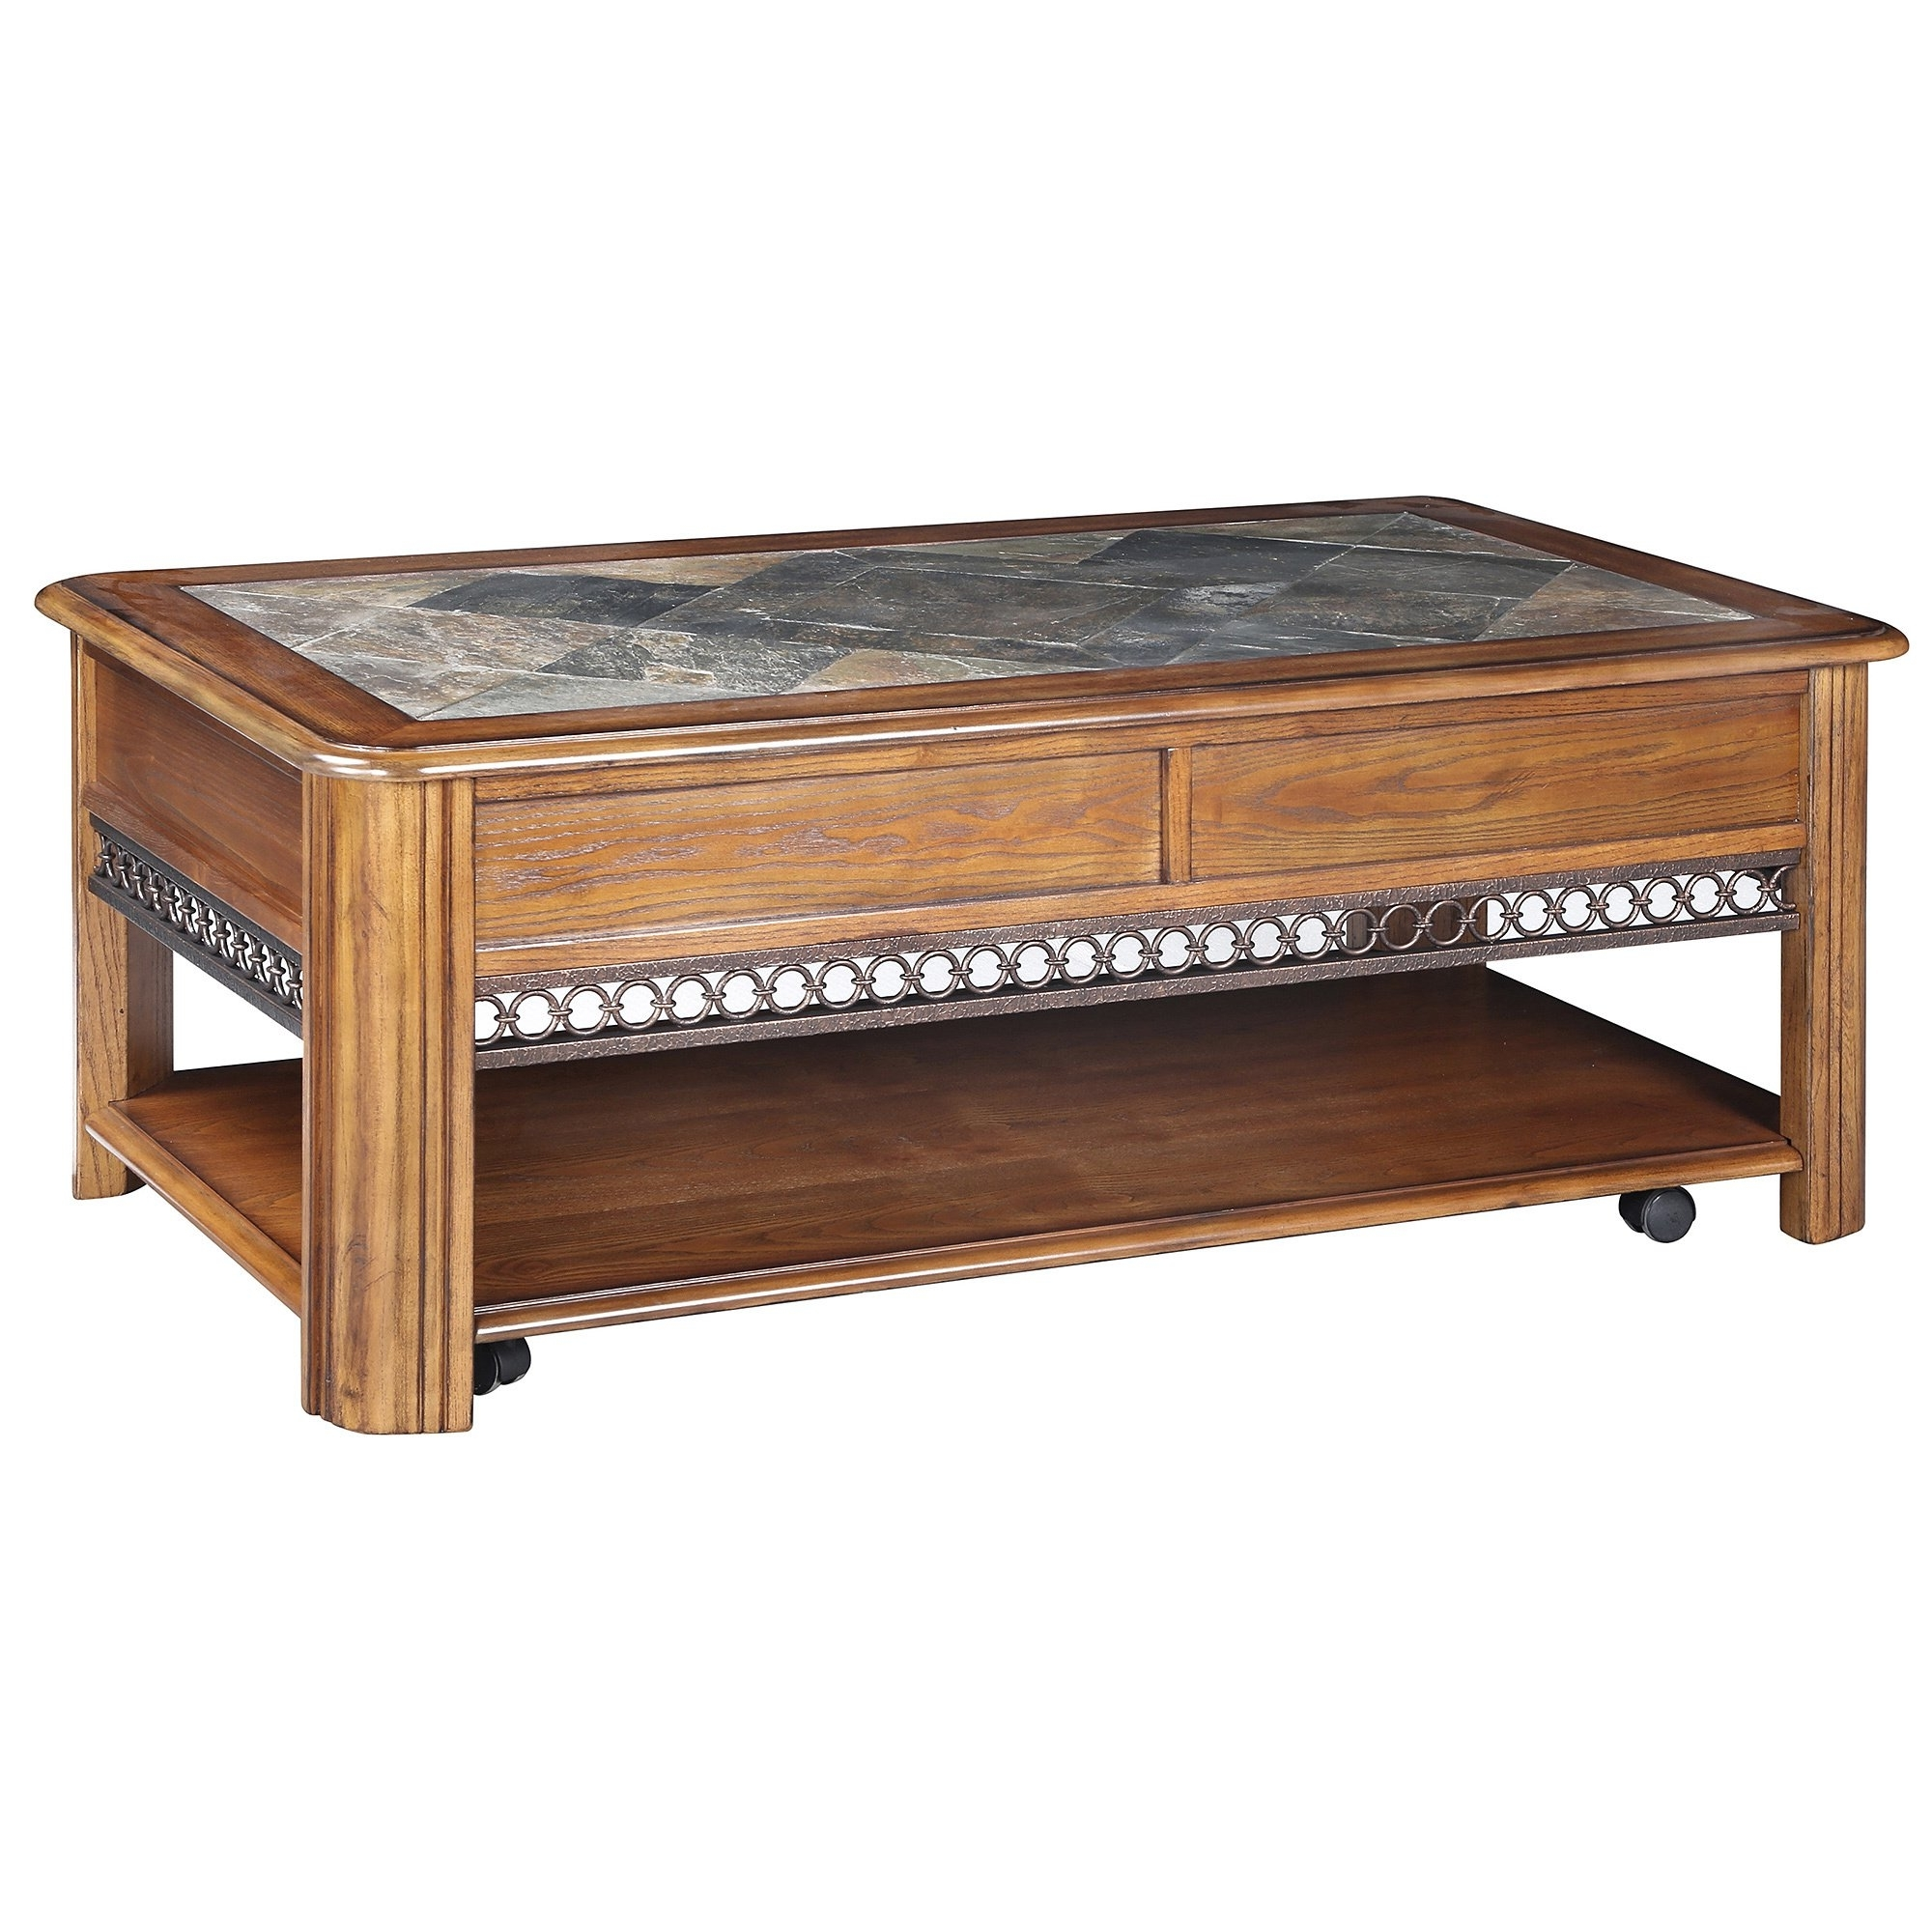 Shop Madison Rustic Warm Nutmeg Lift Top Coffee Table With Casters Regarding Well Liked Autumn Cocktail Tables With Casters (View 14 of 20)